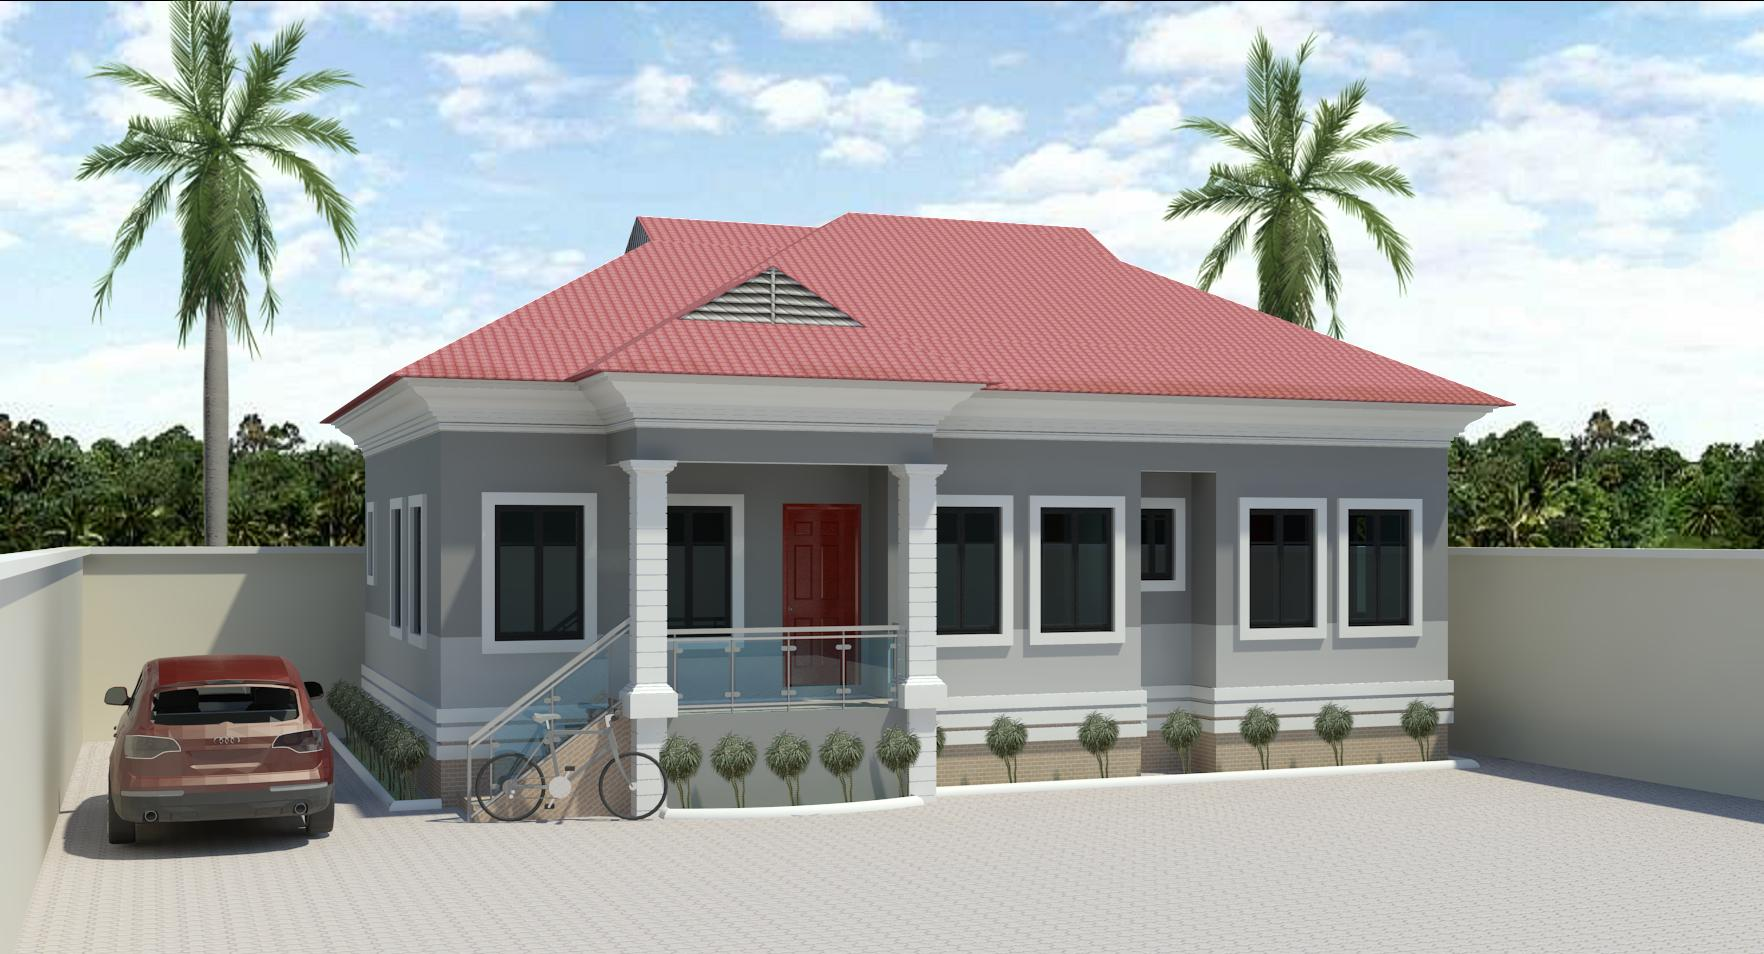 3bedroom bungalow designs in nigeria joy studio design for Beautiful house designs in nigeria